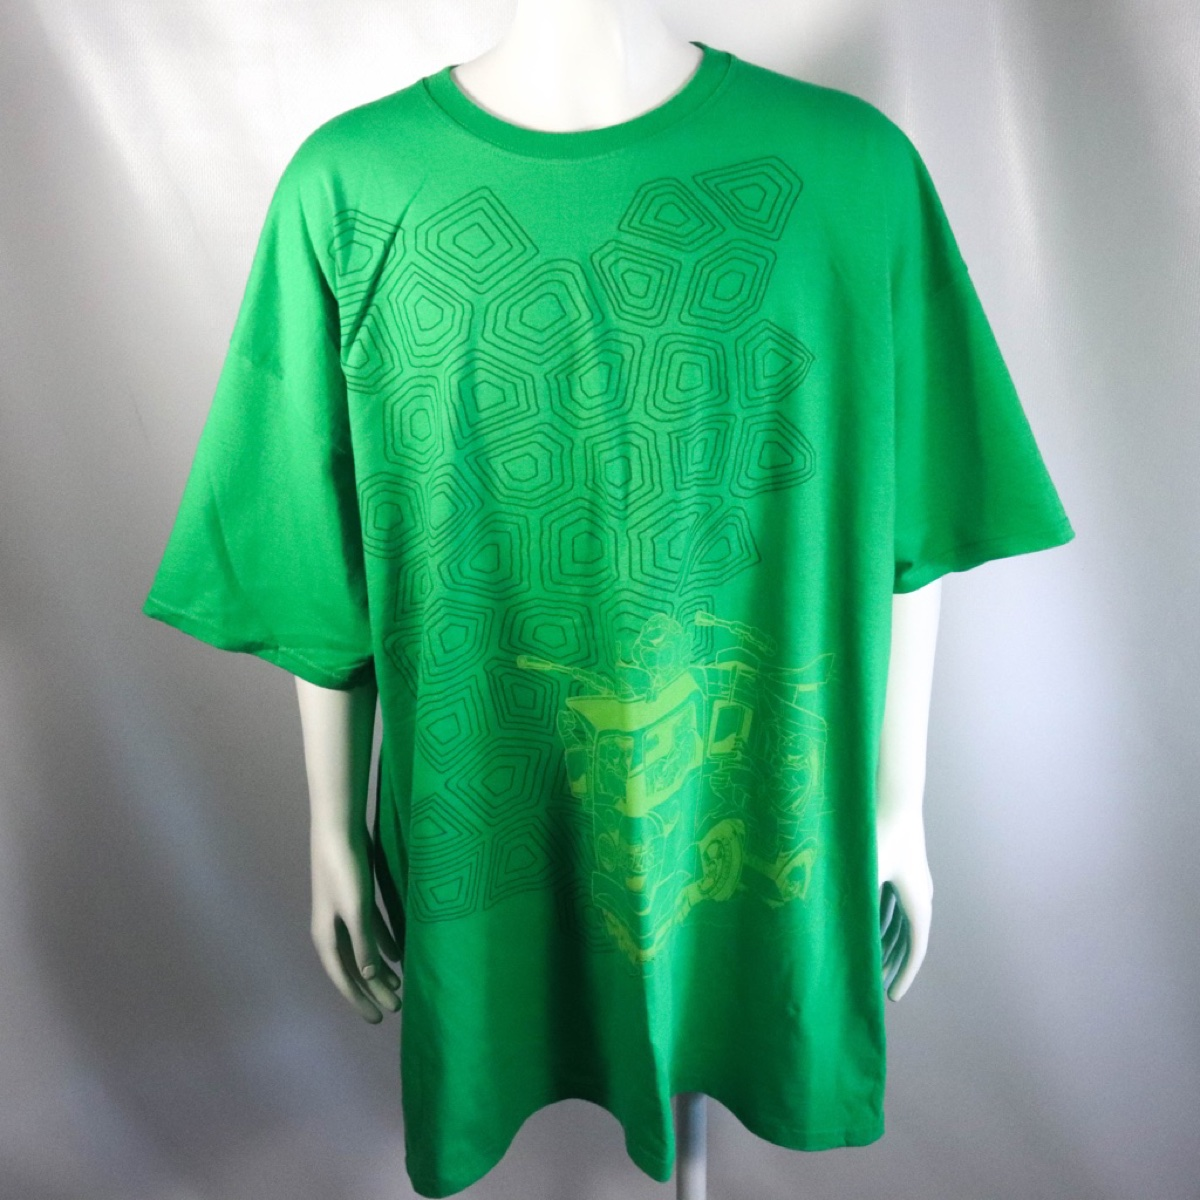 Green Lootwear Exclusive Teenage Mutant Ninja Turtles Short Sleeve T-Shirt Size 2XL